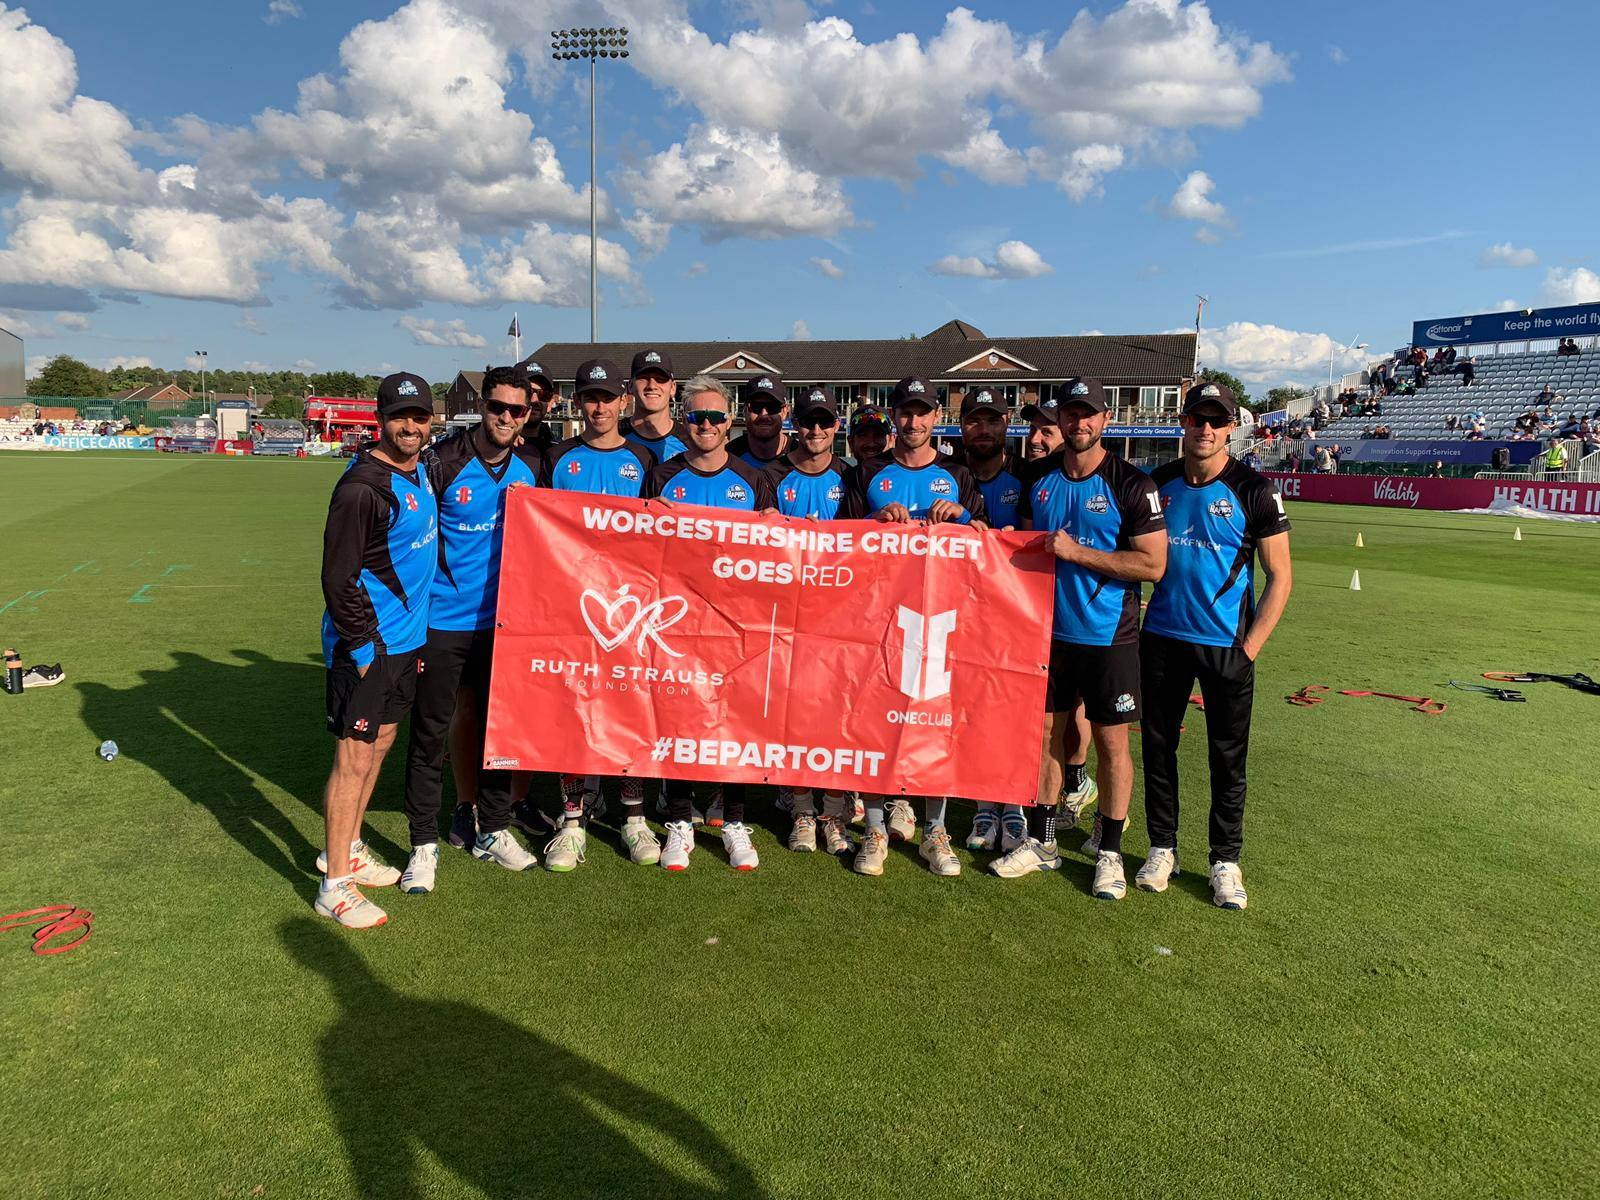 Cricket clubs turn red to support Ruth Strauss foundation